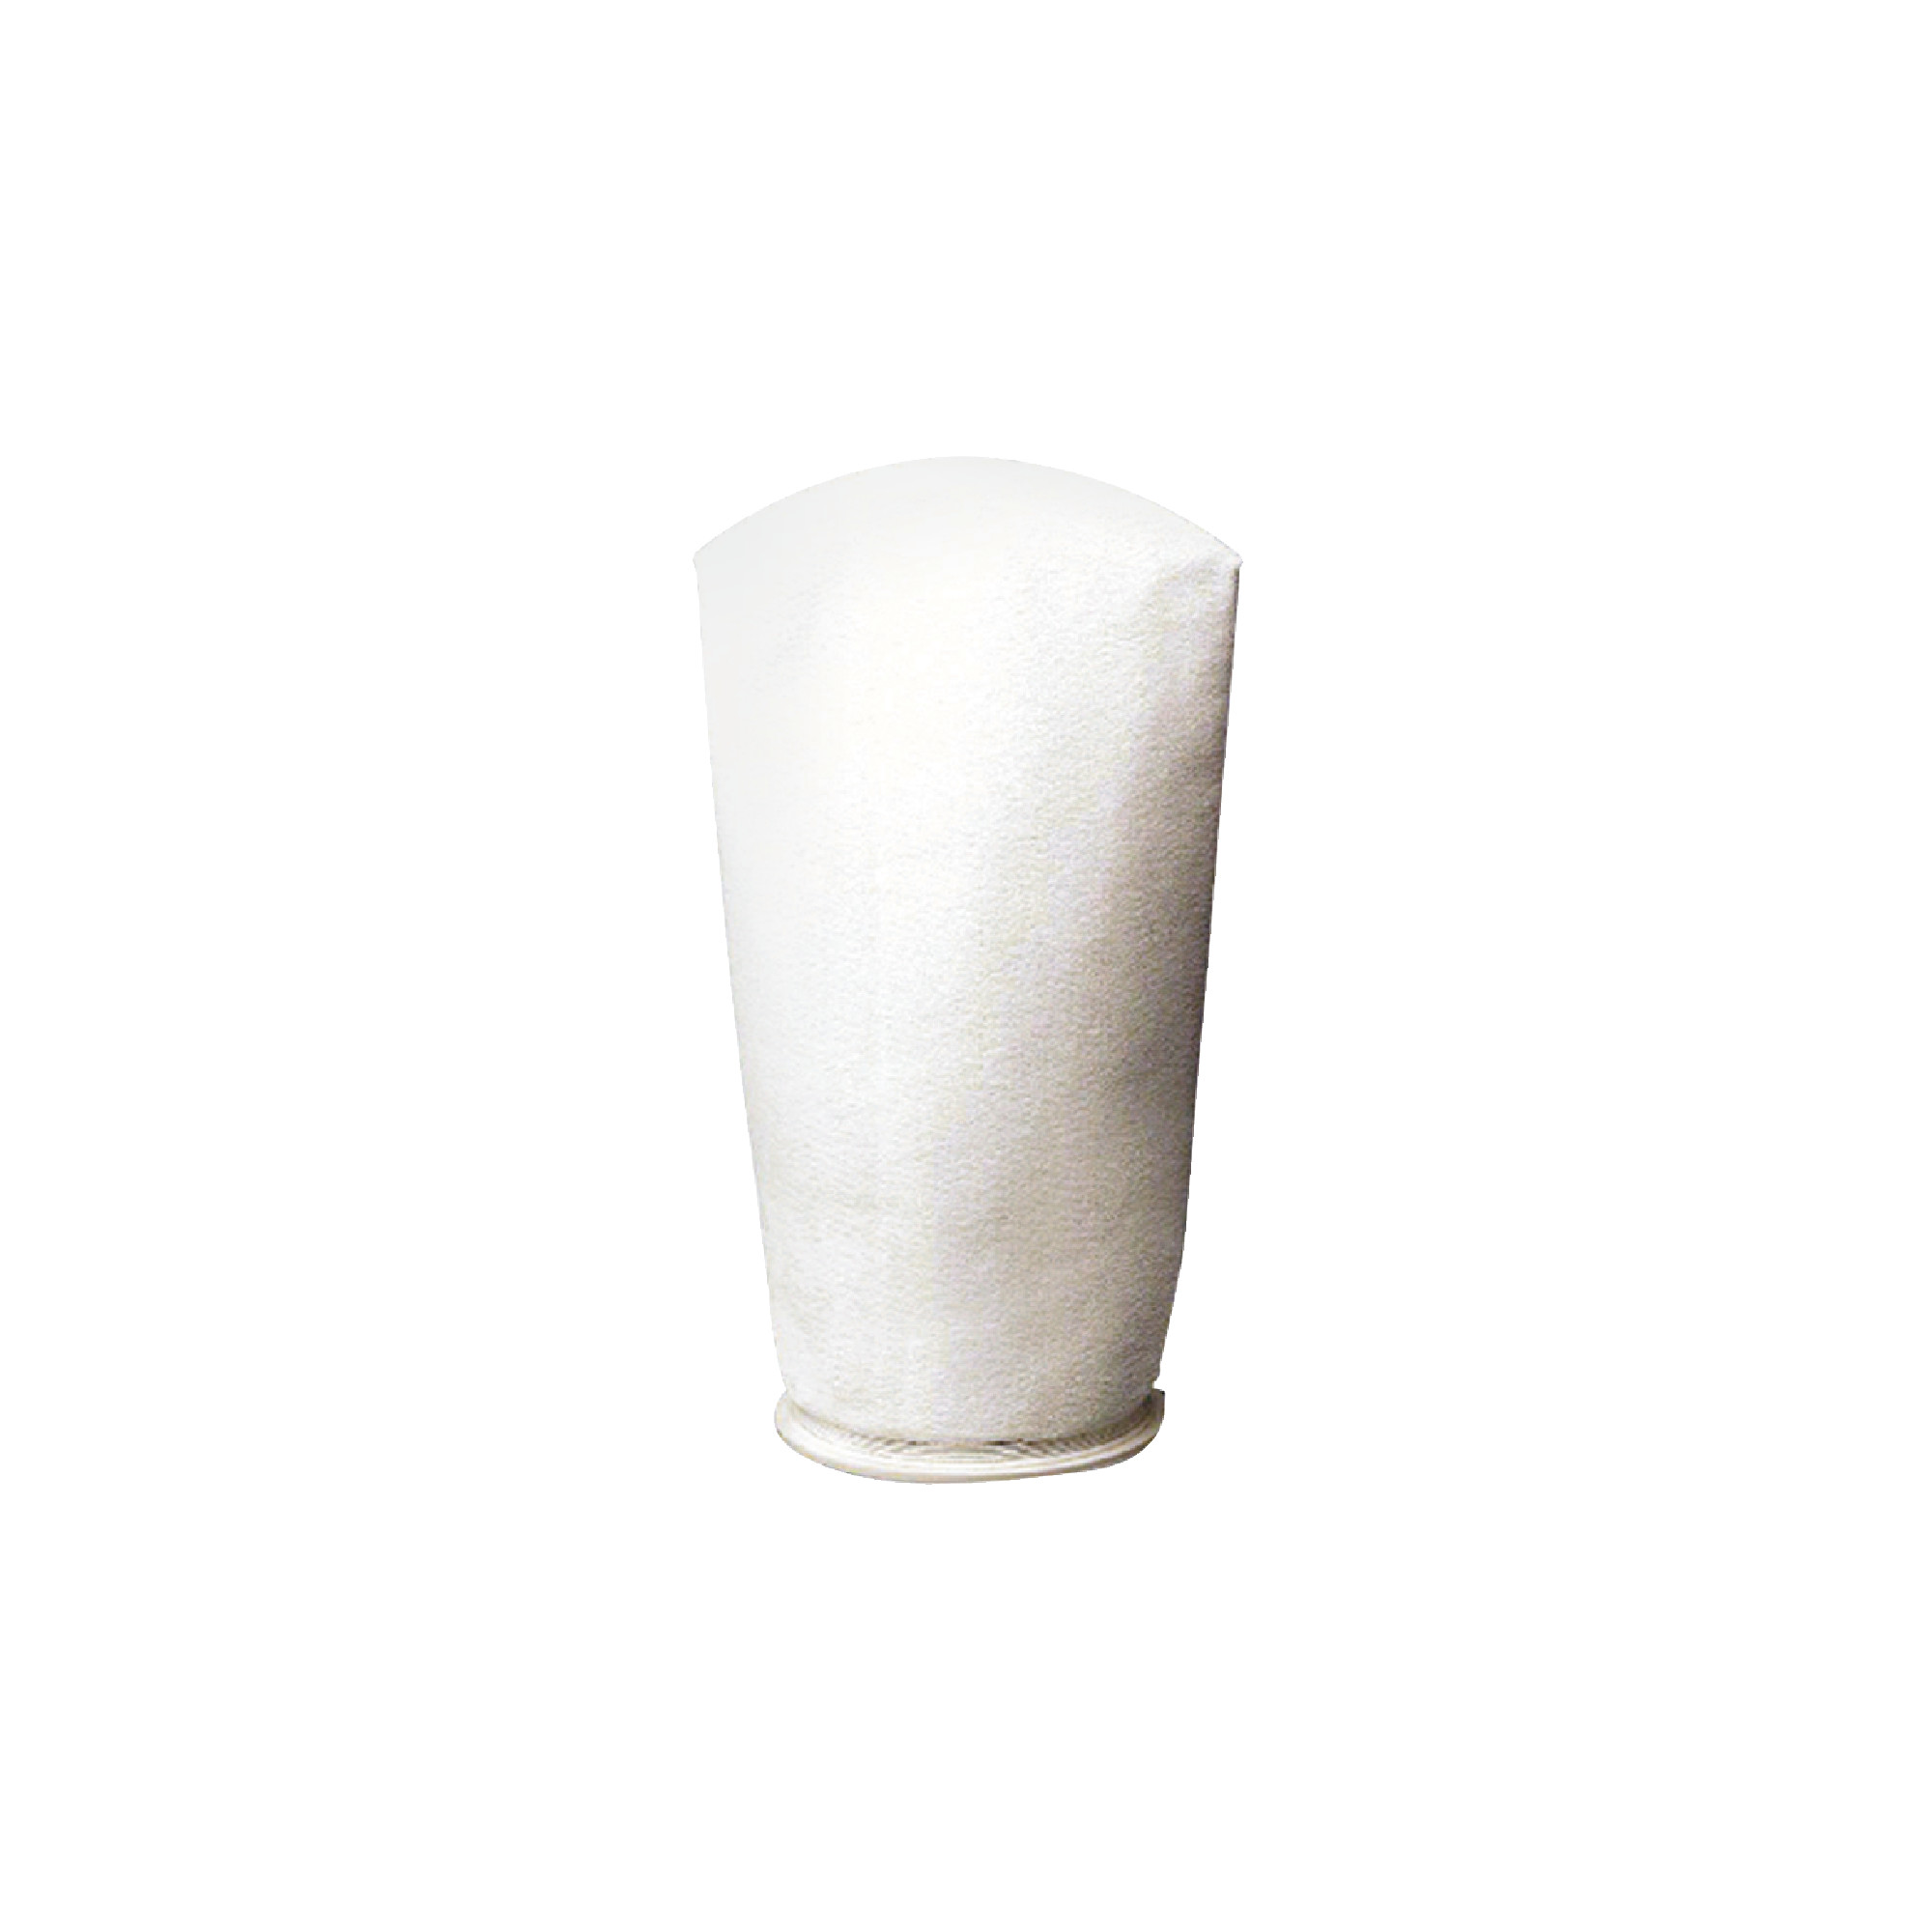 5 Micron Chip Trapper Replacement Filter Bag